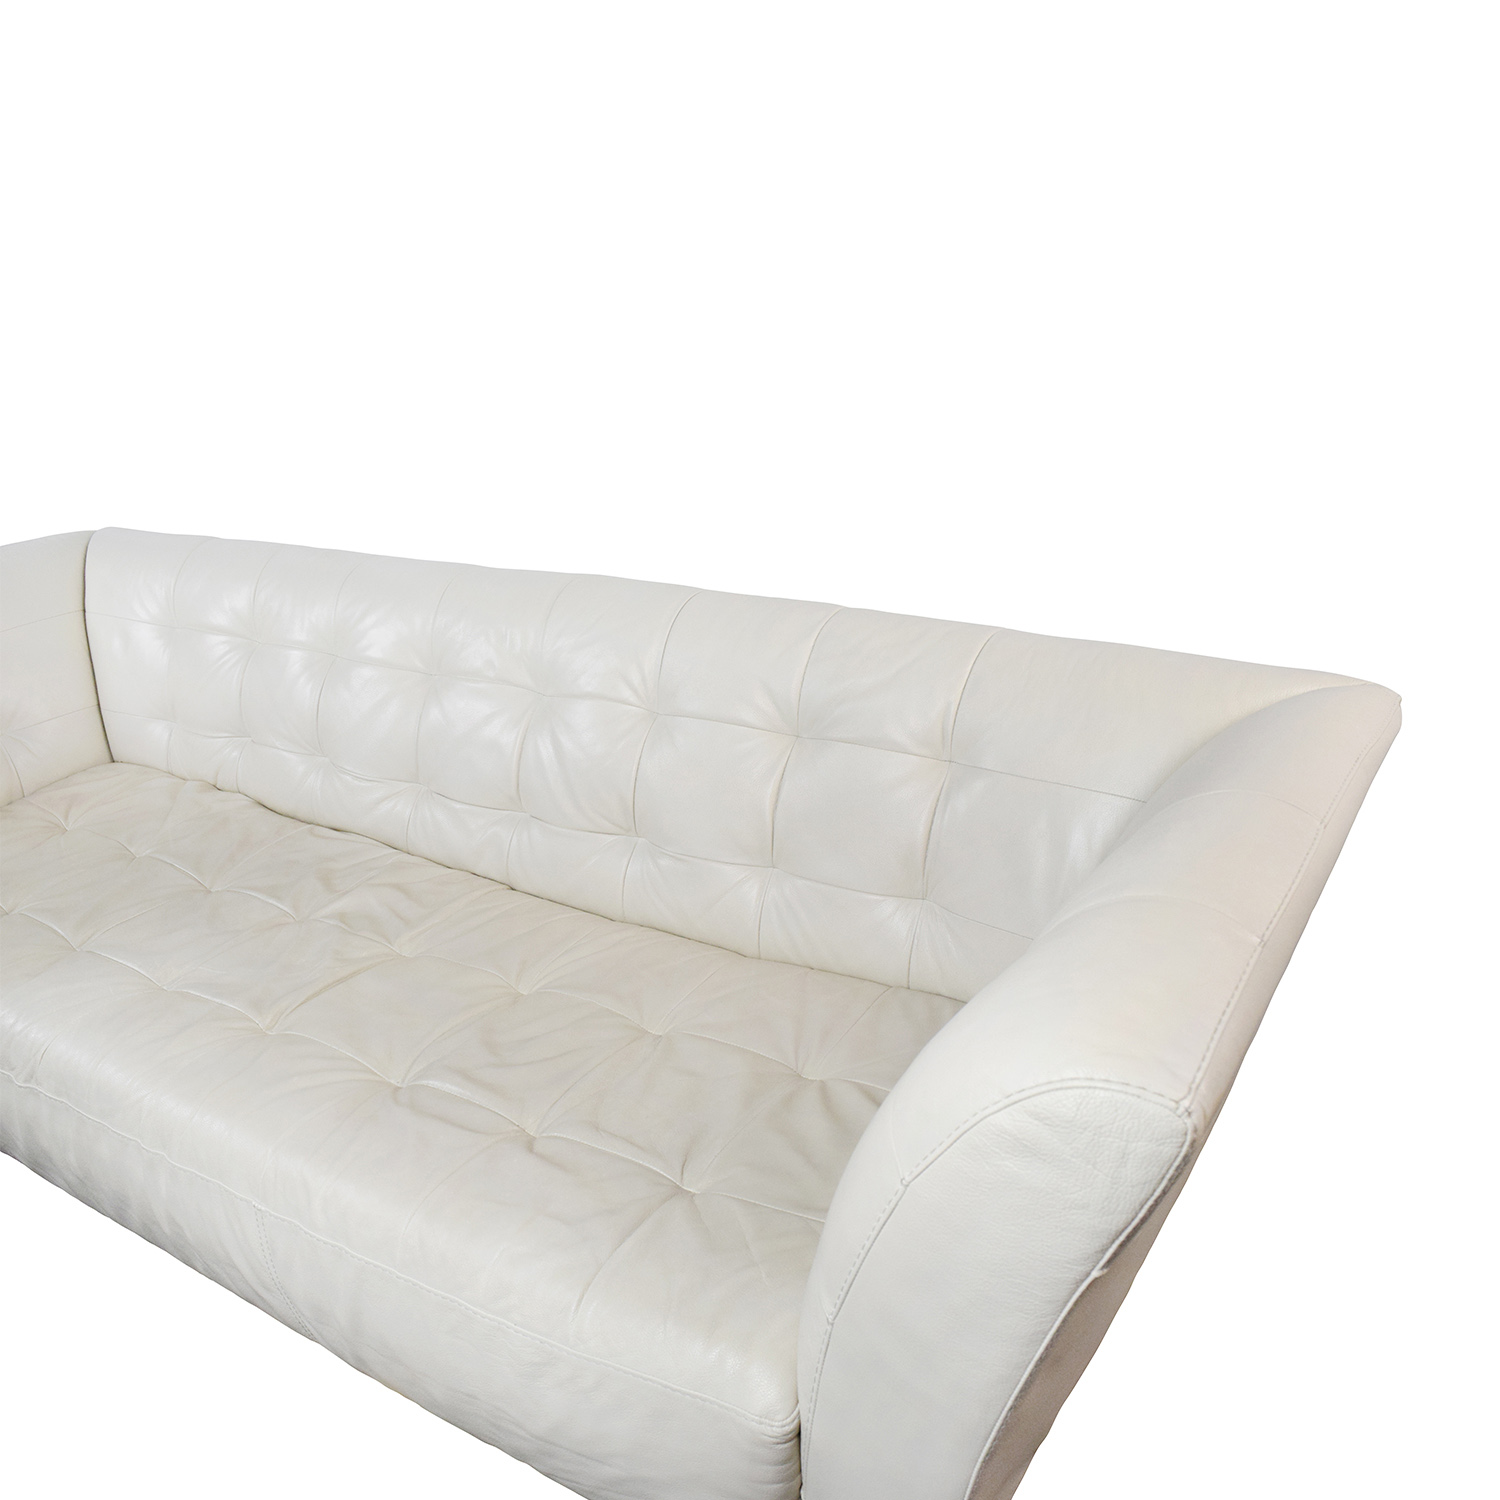 86 Off Macy S Macy S Modern White Leather Tufted Sofa